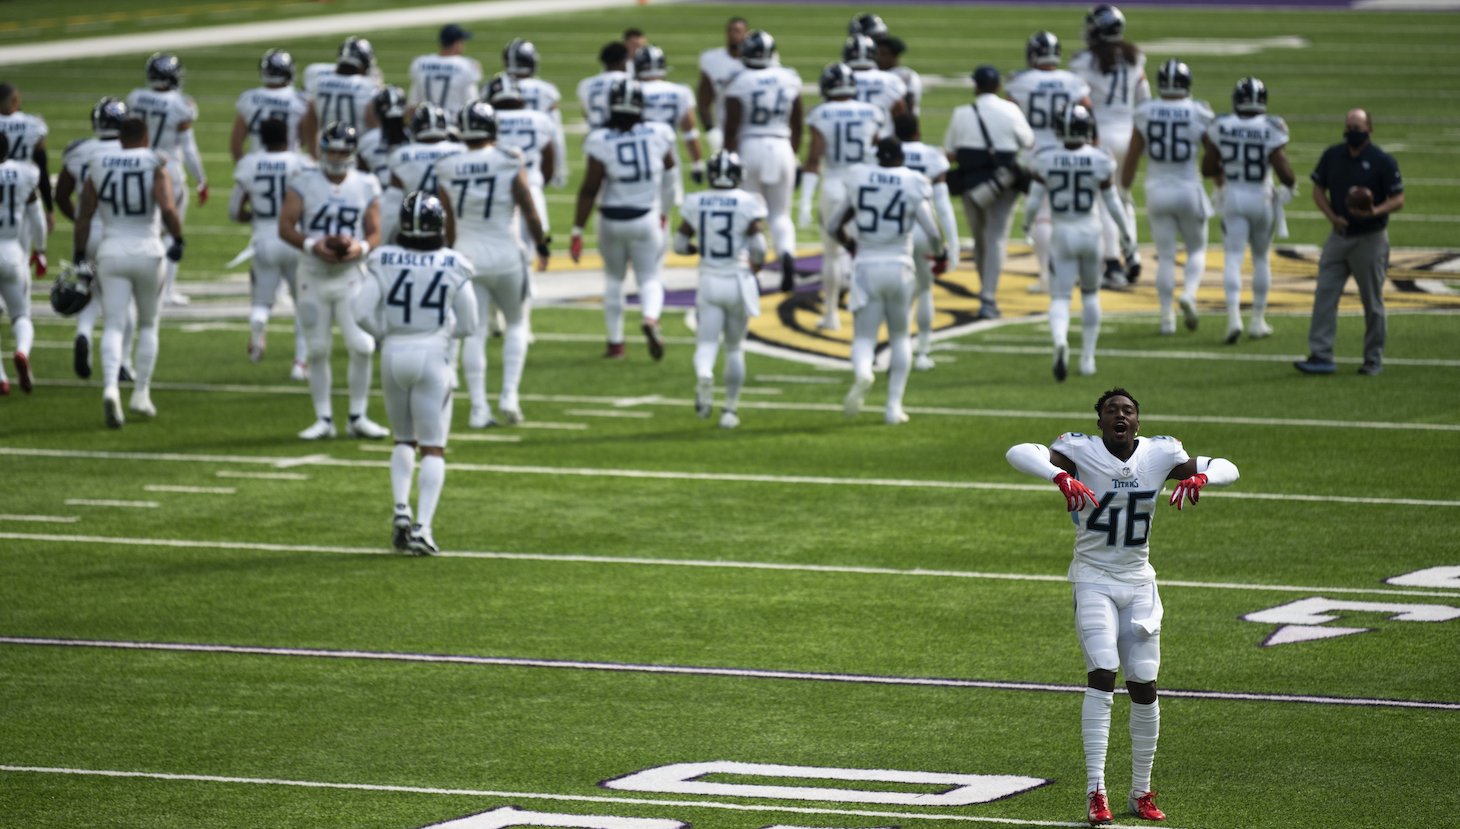 Joshua Kalu #46 of the Tennessee Titans and his teammates take the field before the game against the Minnesota Vikings at U.S. Bank Stadium on September 27, 2020 in Minneapolis, Minnesota.